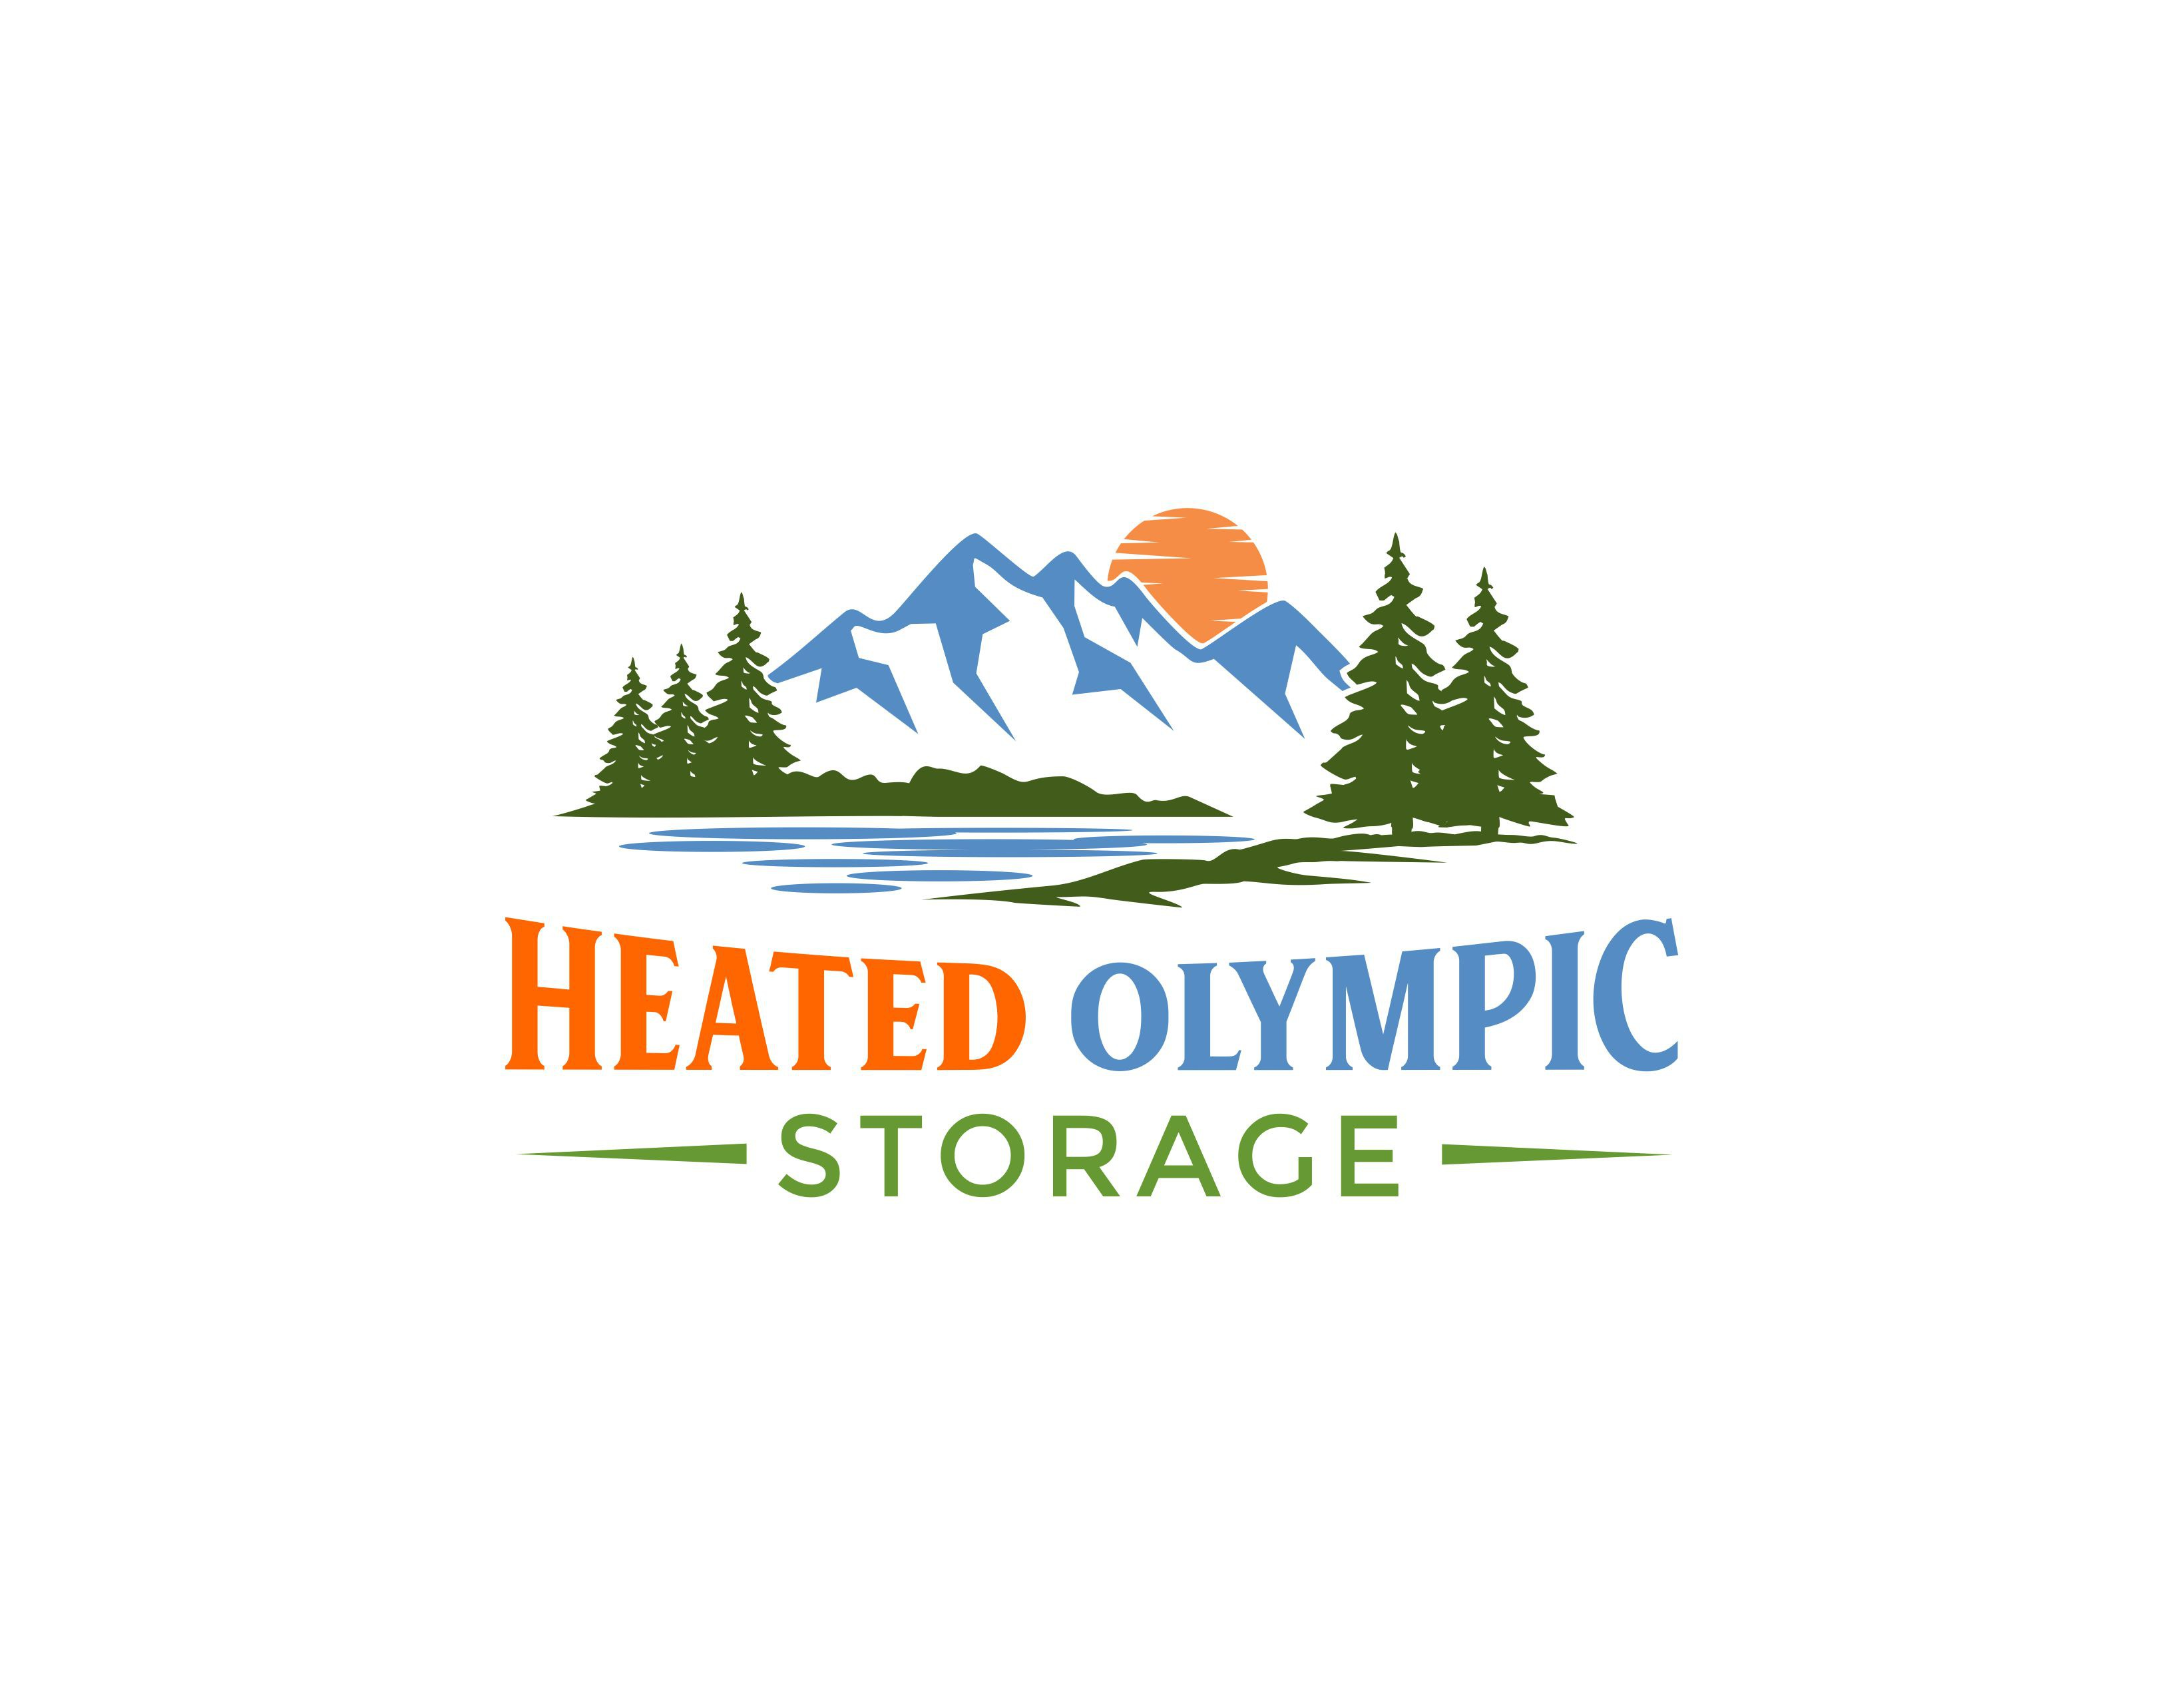 Family owned storage company wanting to show our customers that their valuables are safe with us!